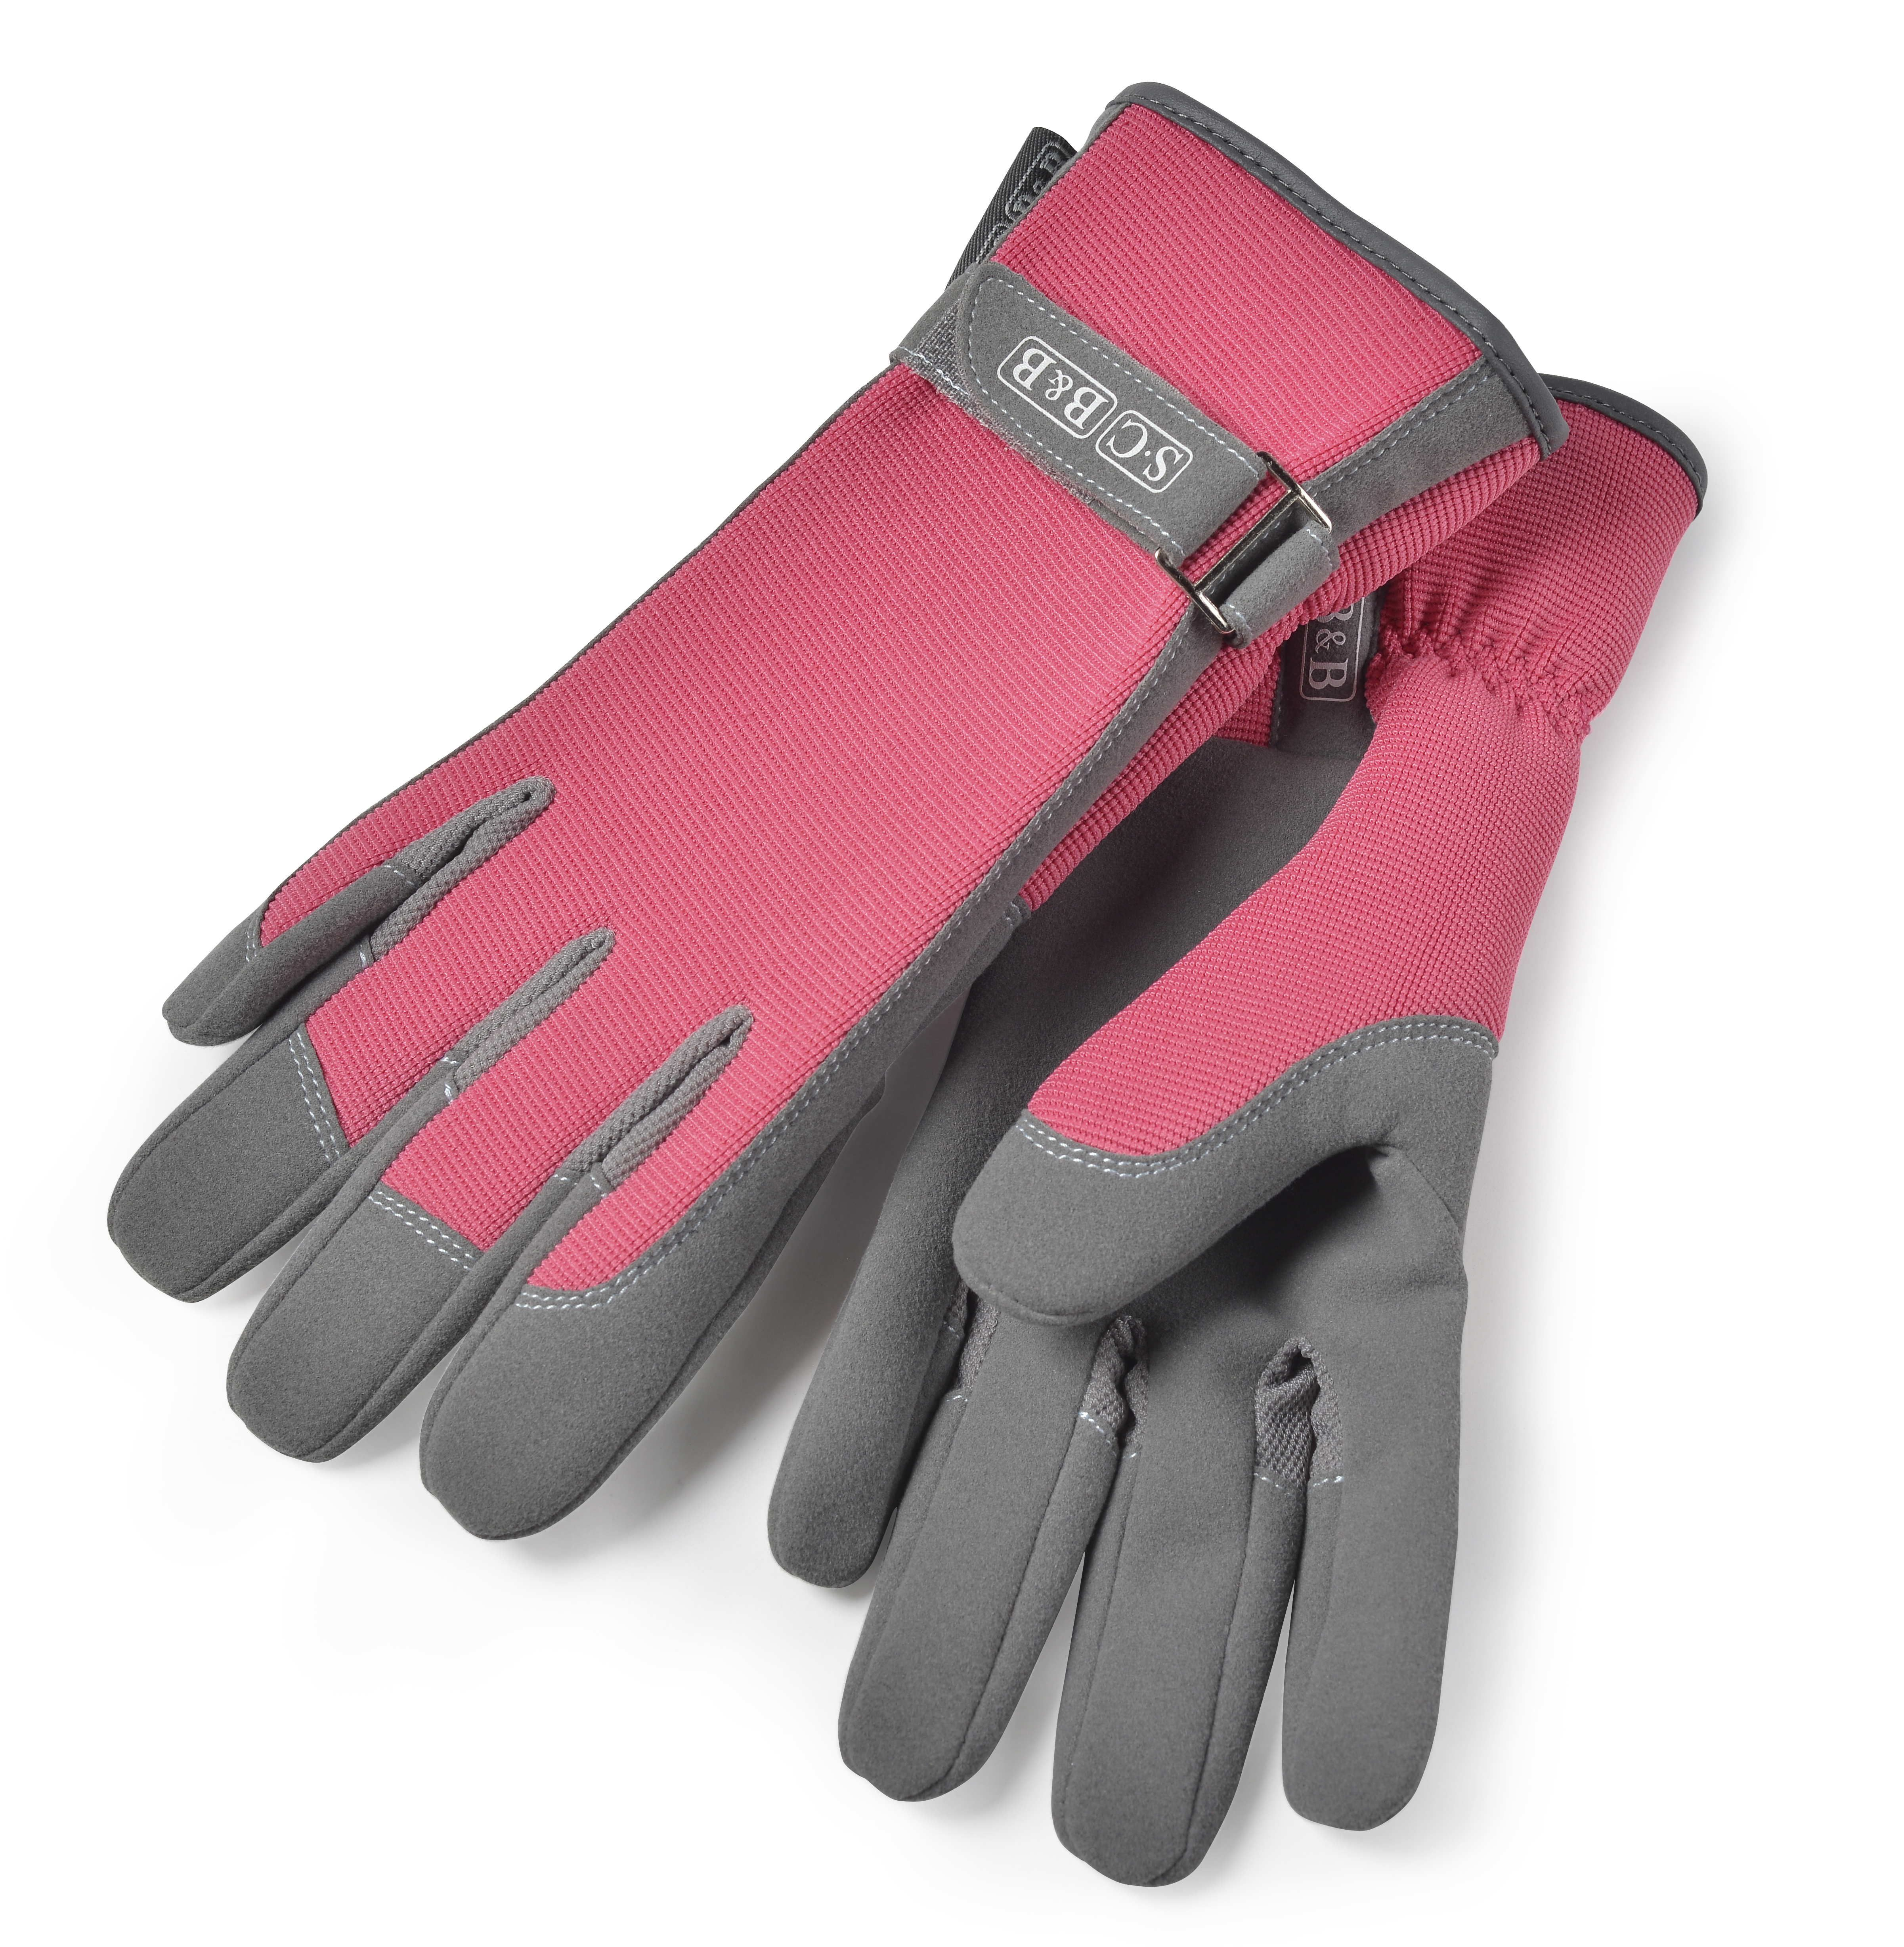 Gorgeous Raspberry Coloured Gardening Gloves Designed By Sophie Conran  Available From Www.annabeljames.co